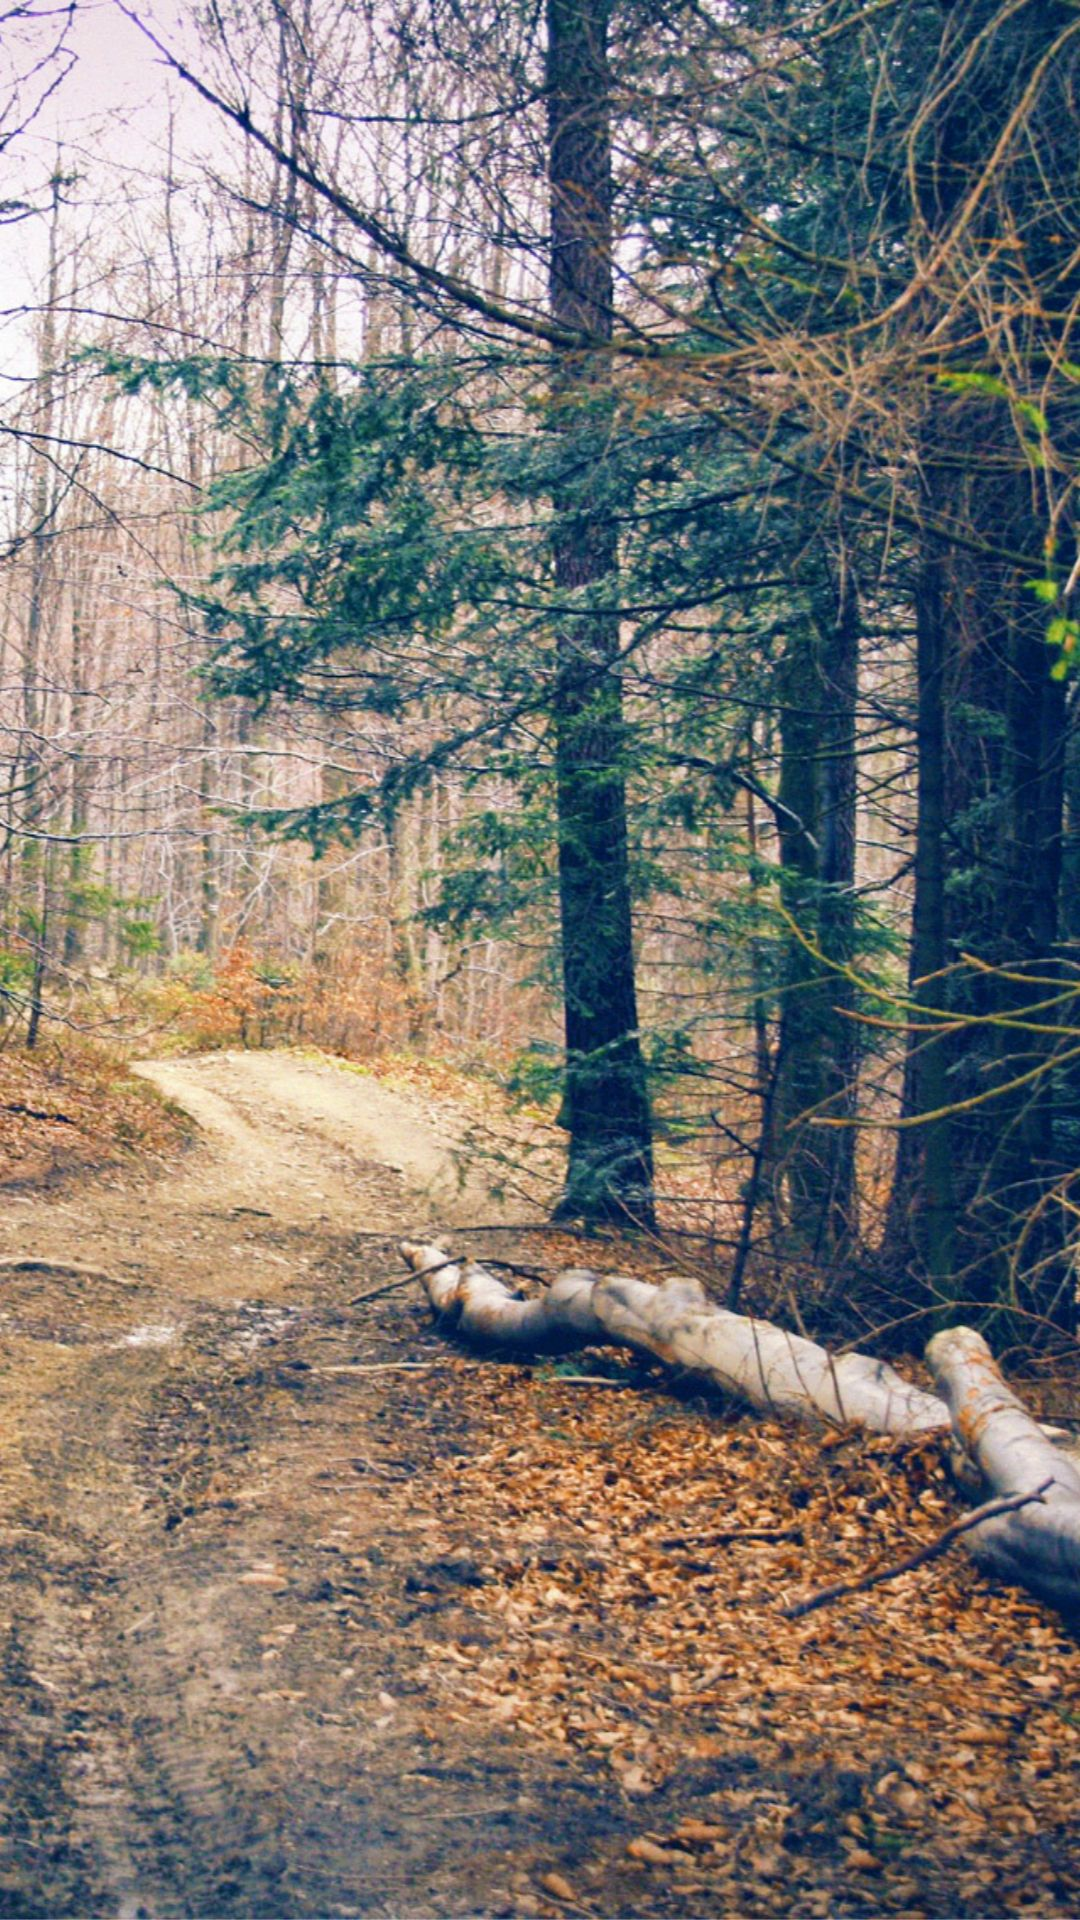 Hiking Forest Road Iphone 6 Wallpaper Download Iphone Wallpapers Ipad Wallpapers One Stop Download Forest Road Iphone 6 Wallpaper Iphone 5s Wallpaper